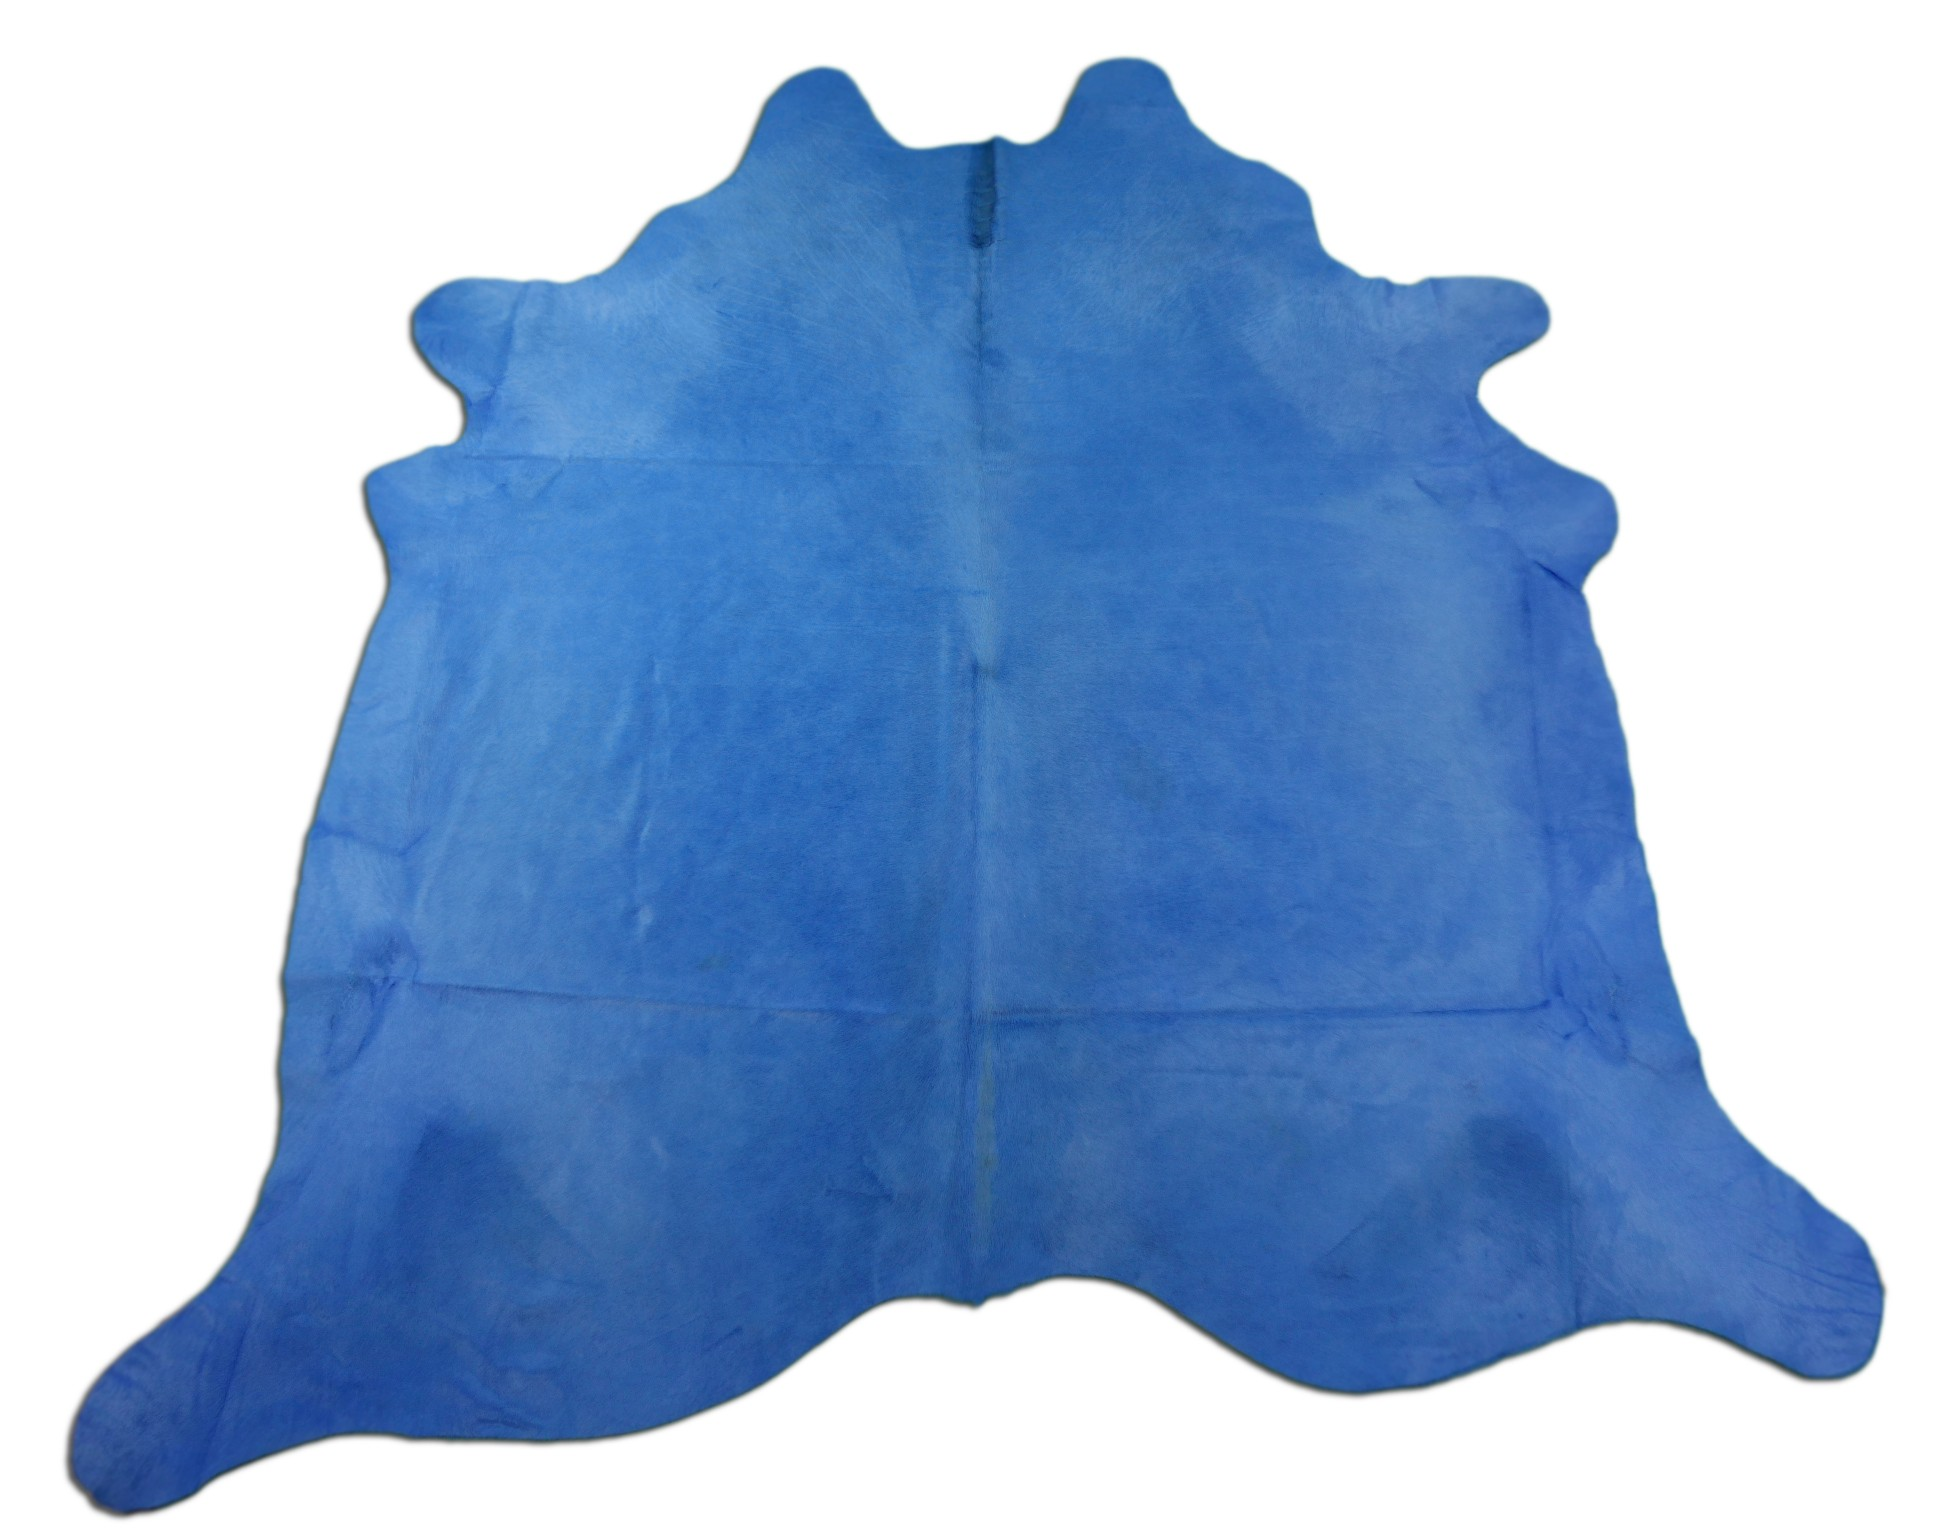 Dyed Light Blue Cowhide Rugs Size: ~7 X 7 ft Dyed Light Blue Cowhide Rugs